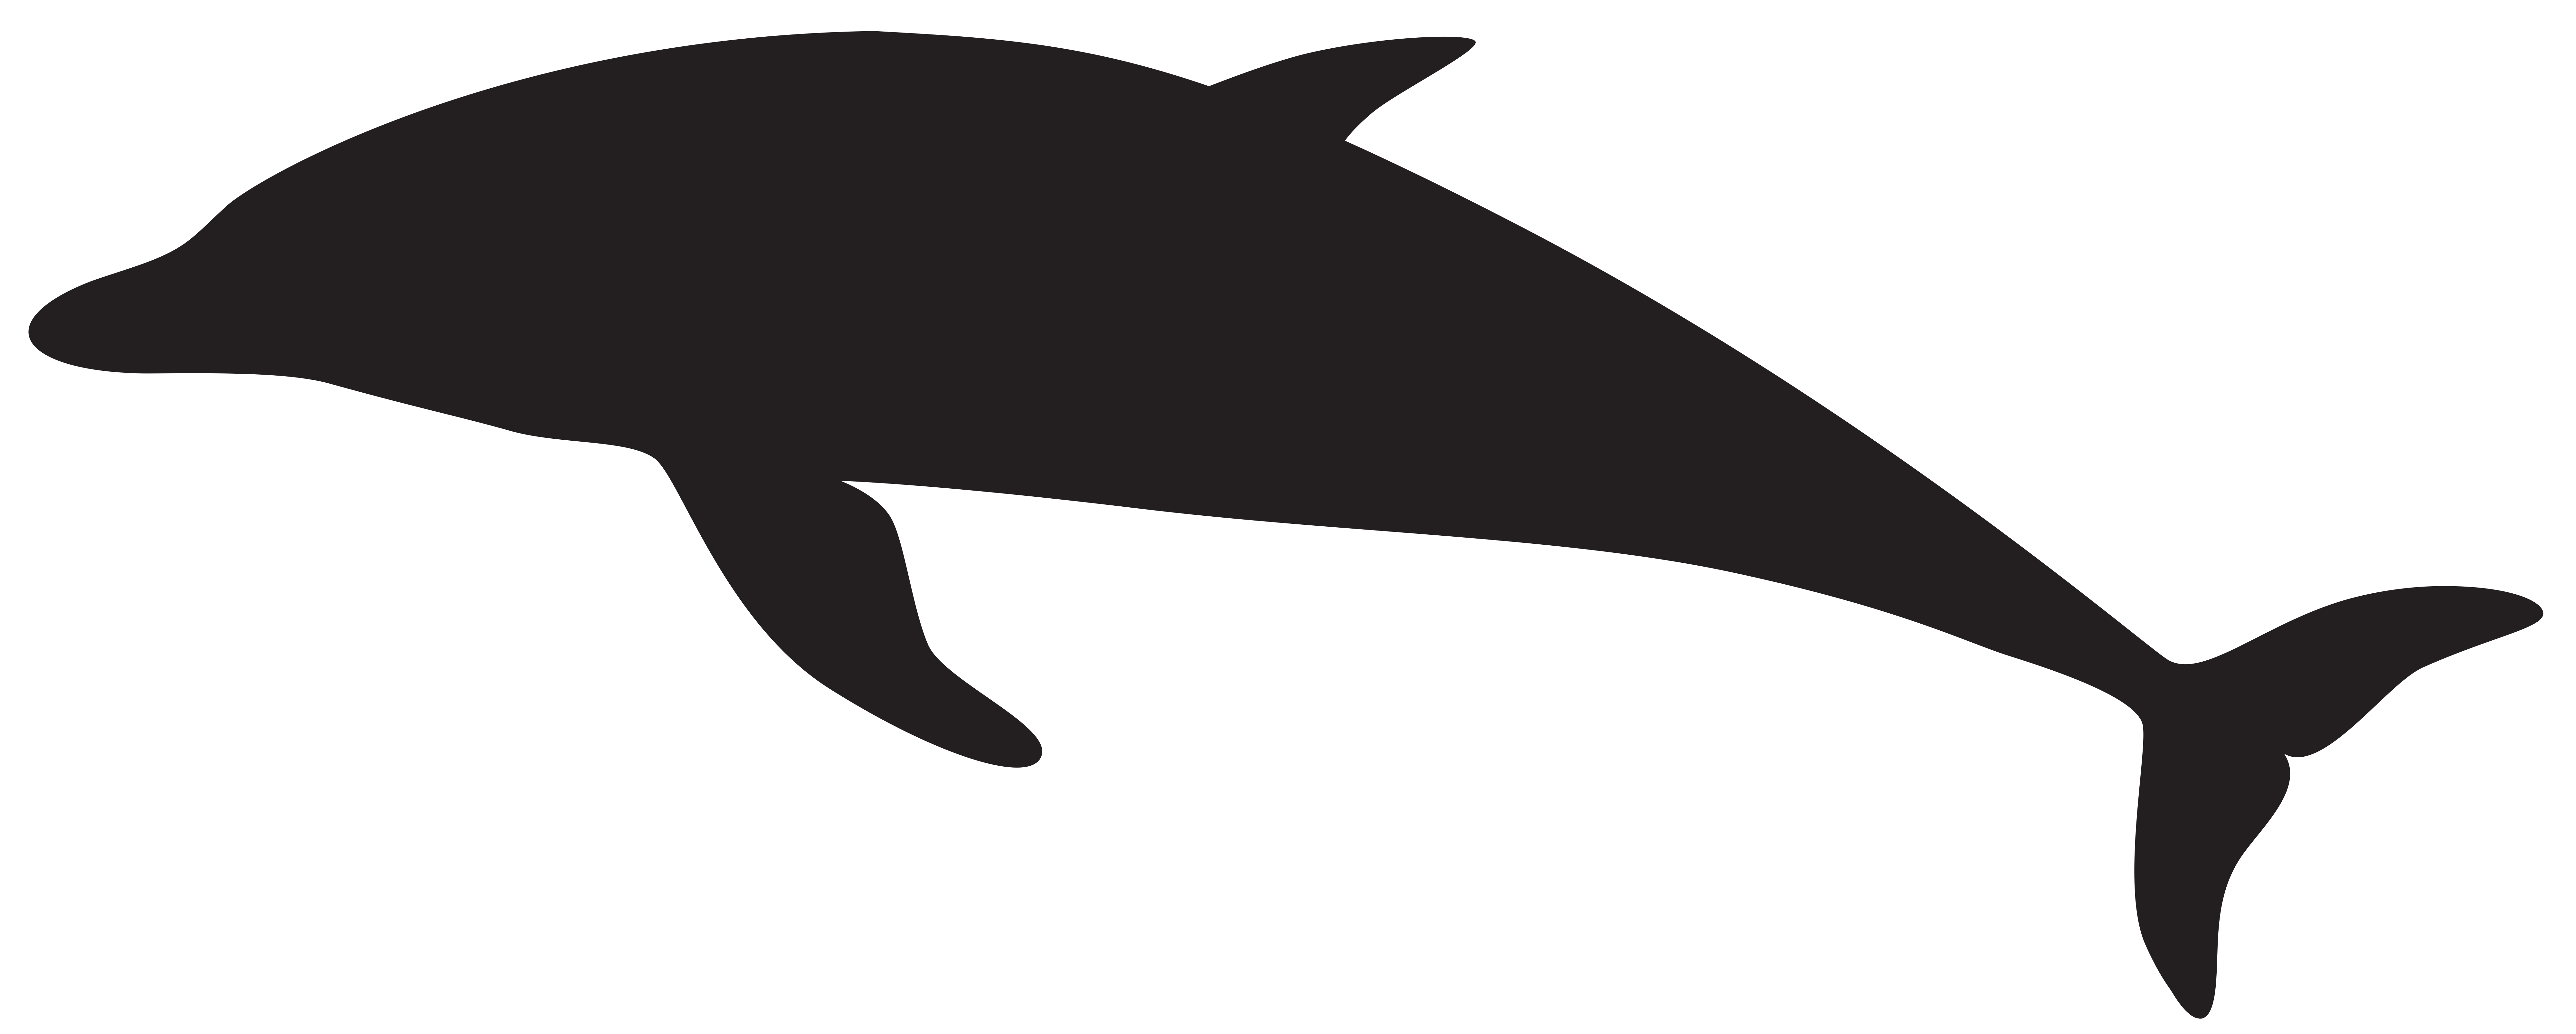 Dolphin silhouette png. Clip art image gallery